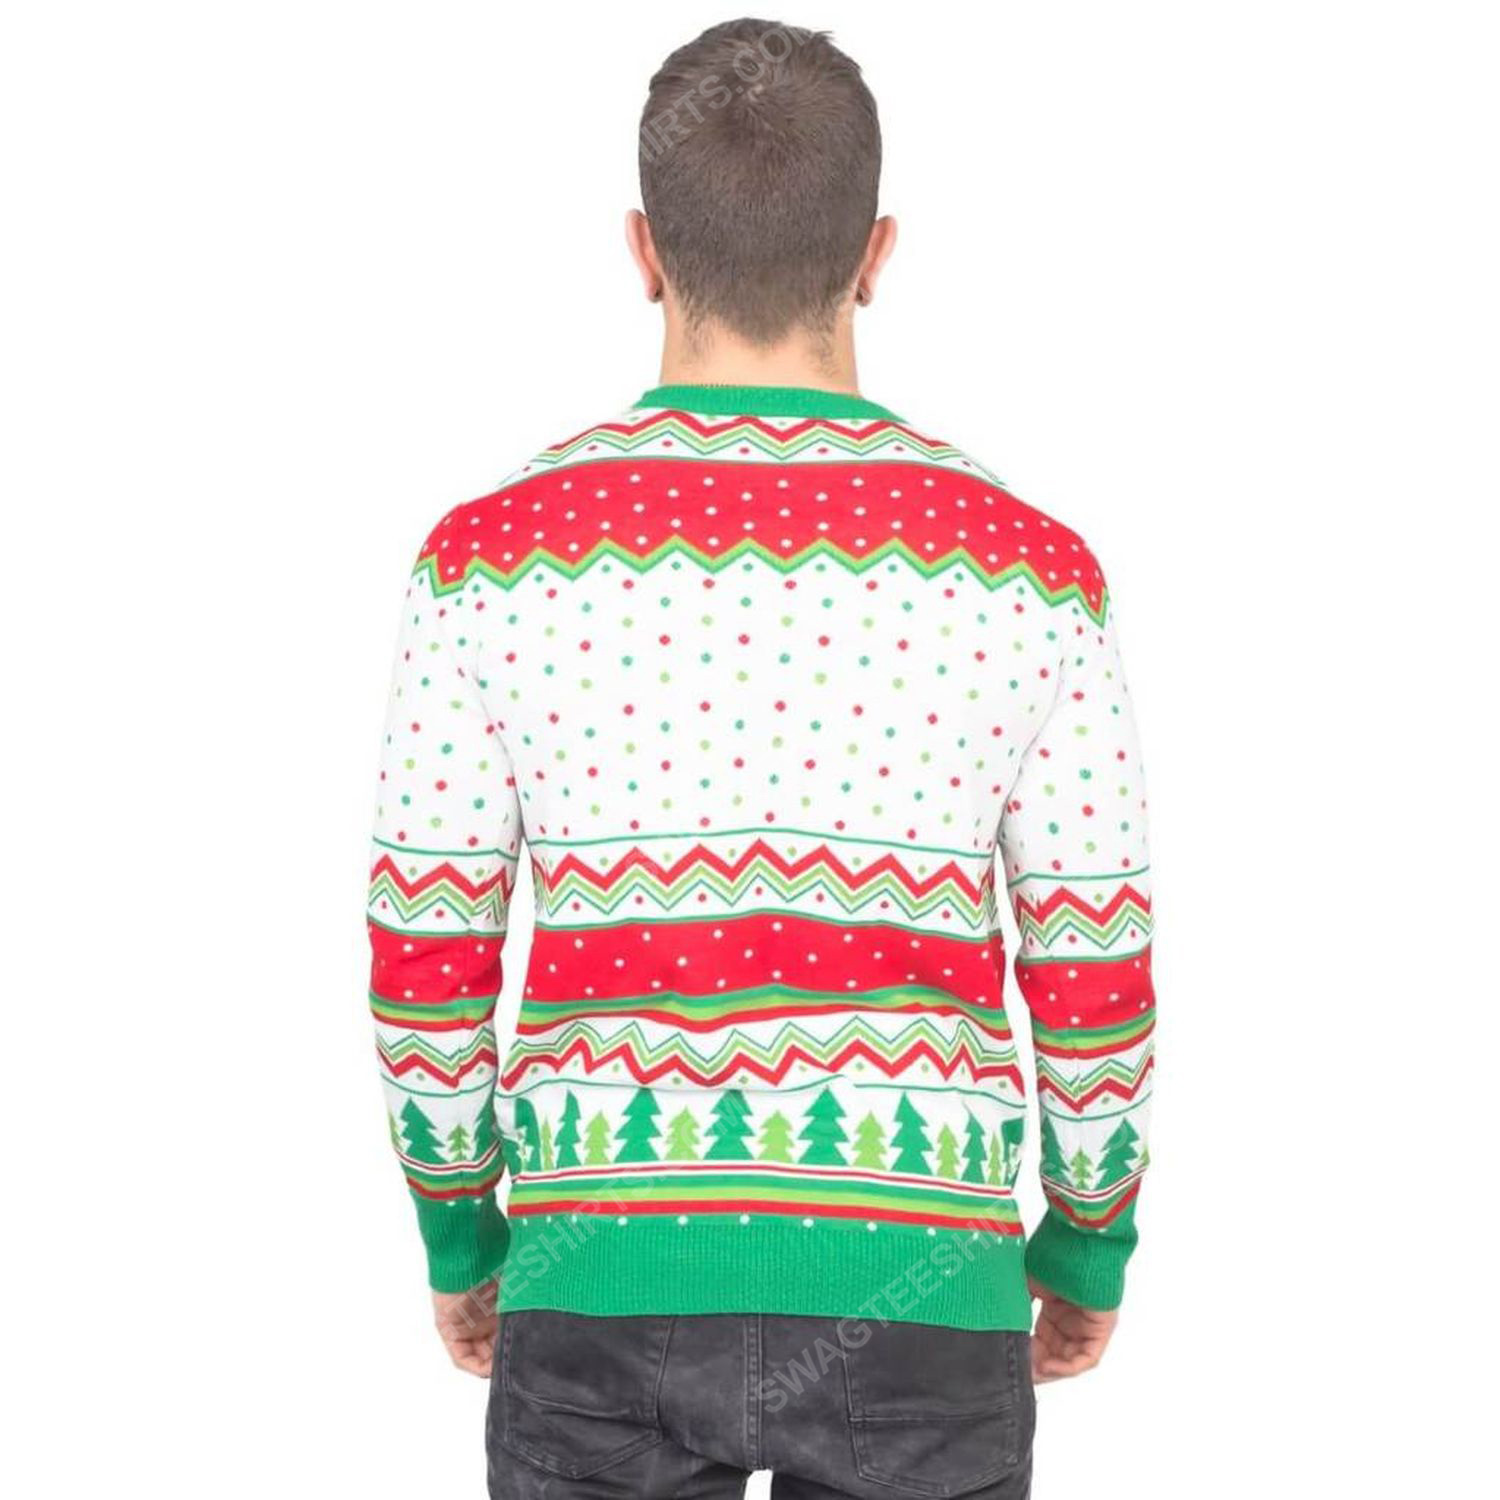 Baby it's covid outside full print ugly christmas sweater 5